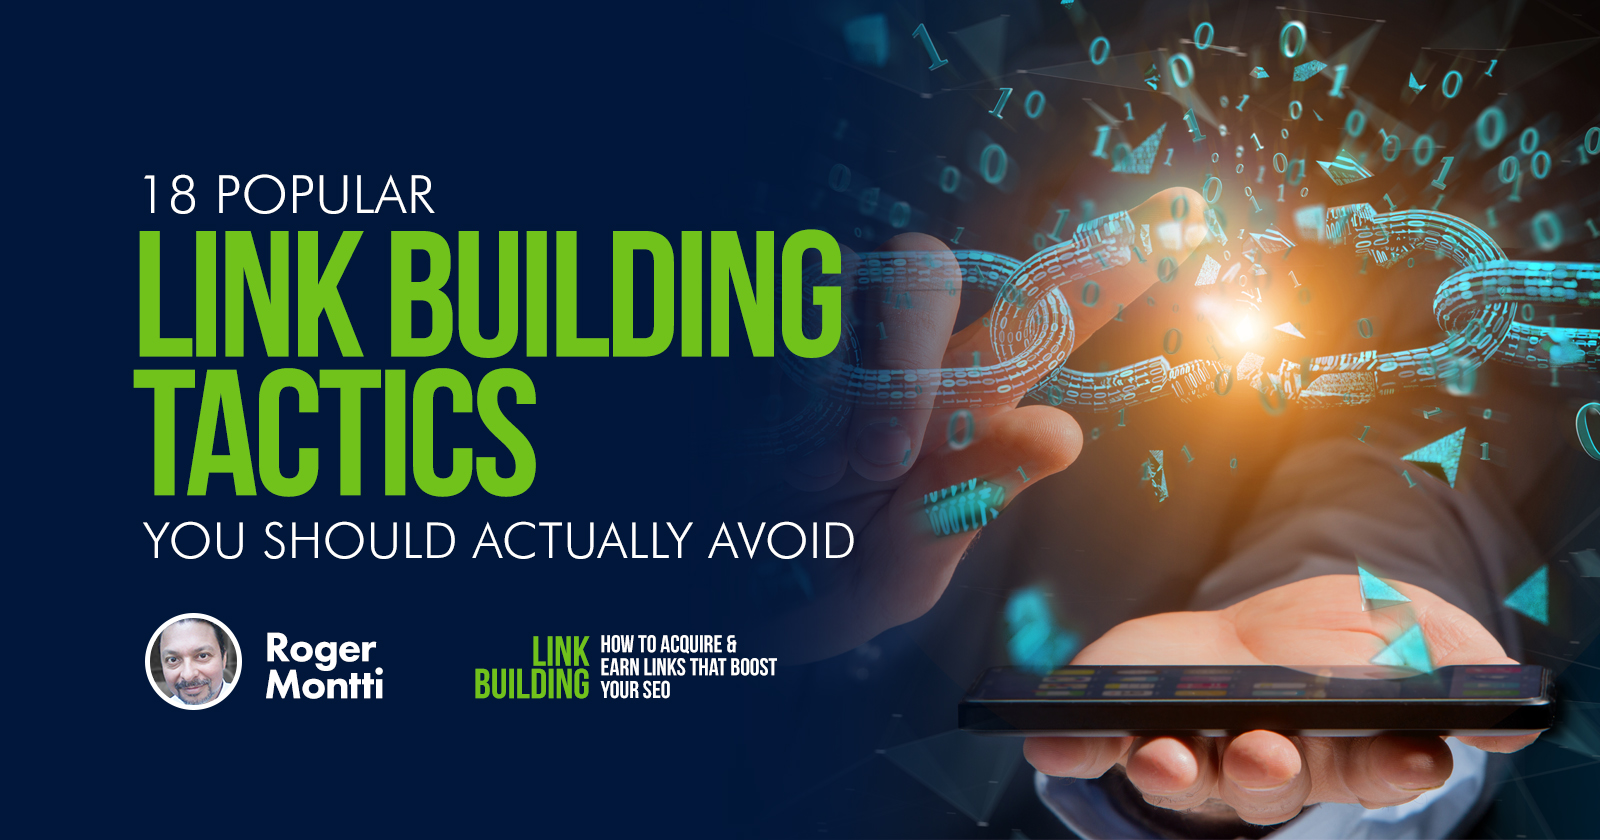 18 Popular Link Building Tactics You Should Actually Avoid - Search Engine Journal